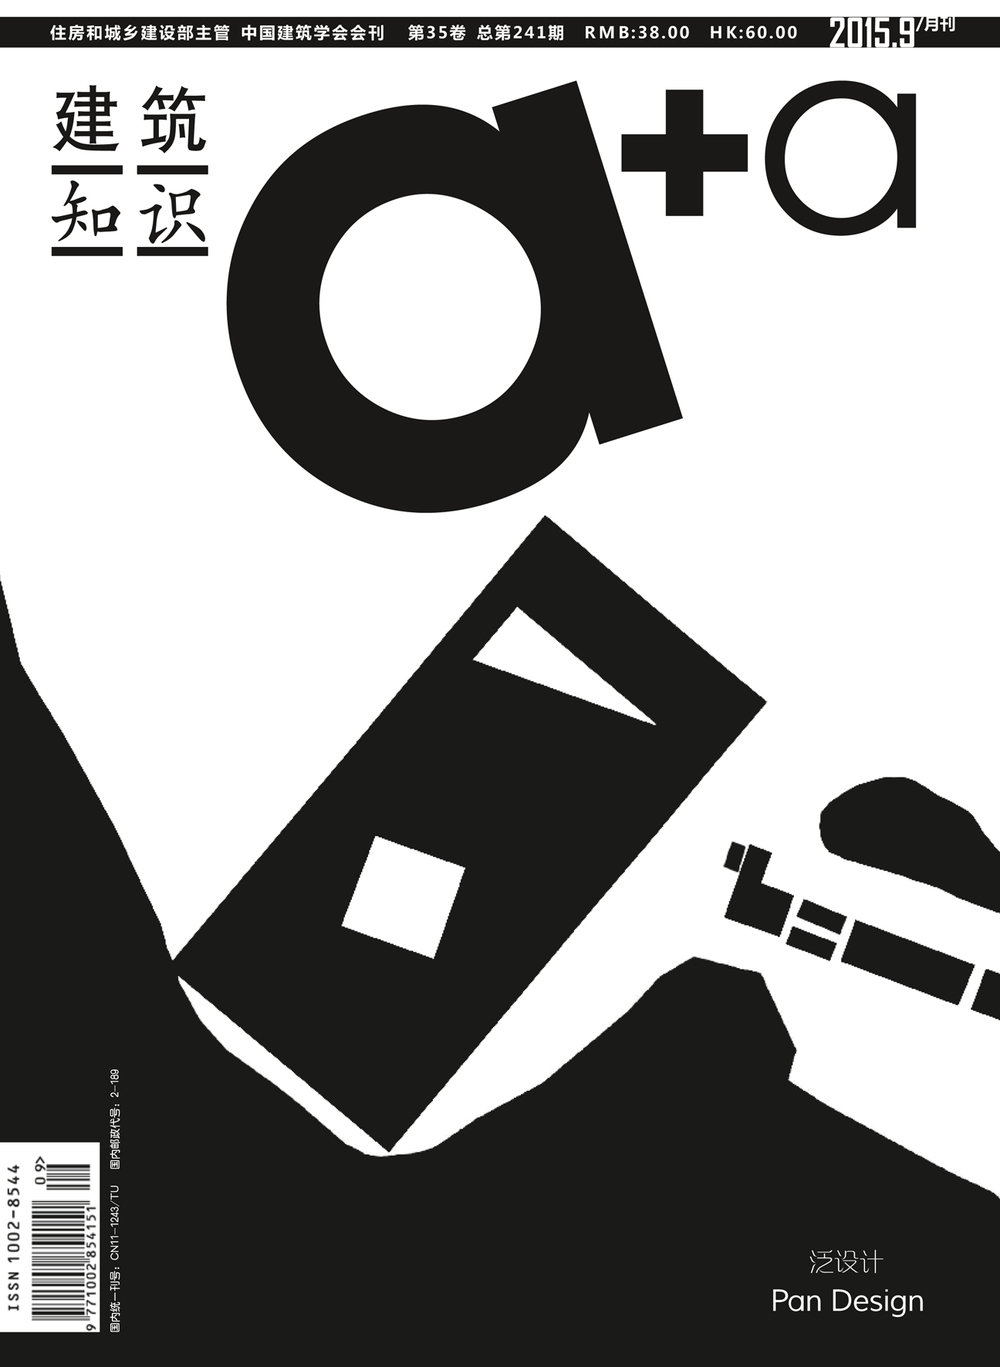 S U S A N N A    B A U E R    a+a    magazine  ,    Architectural Society of China,   China   issue 241, September 2015